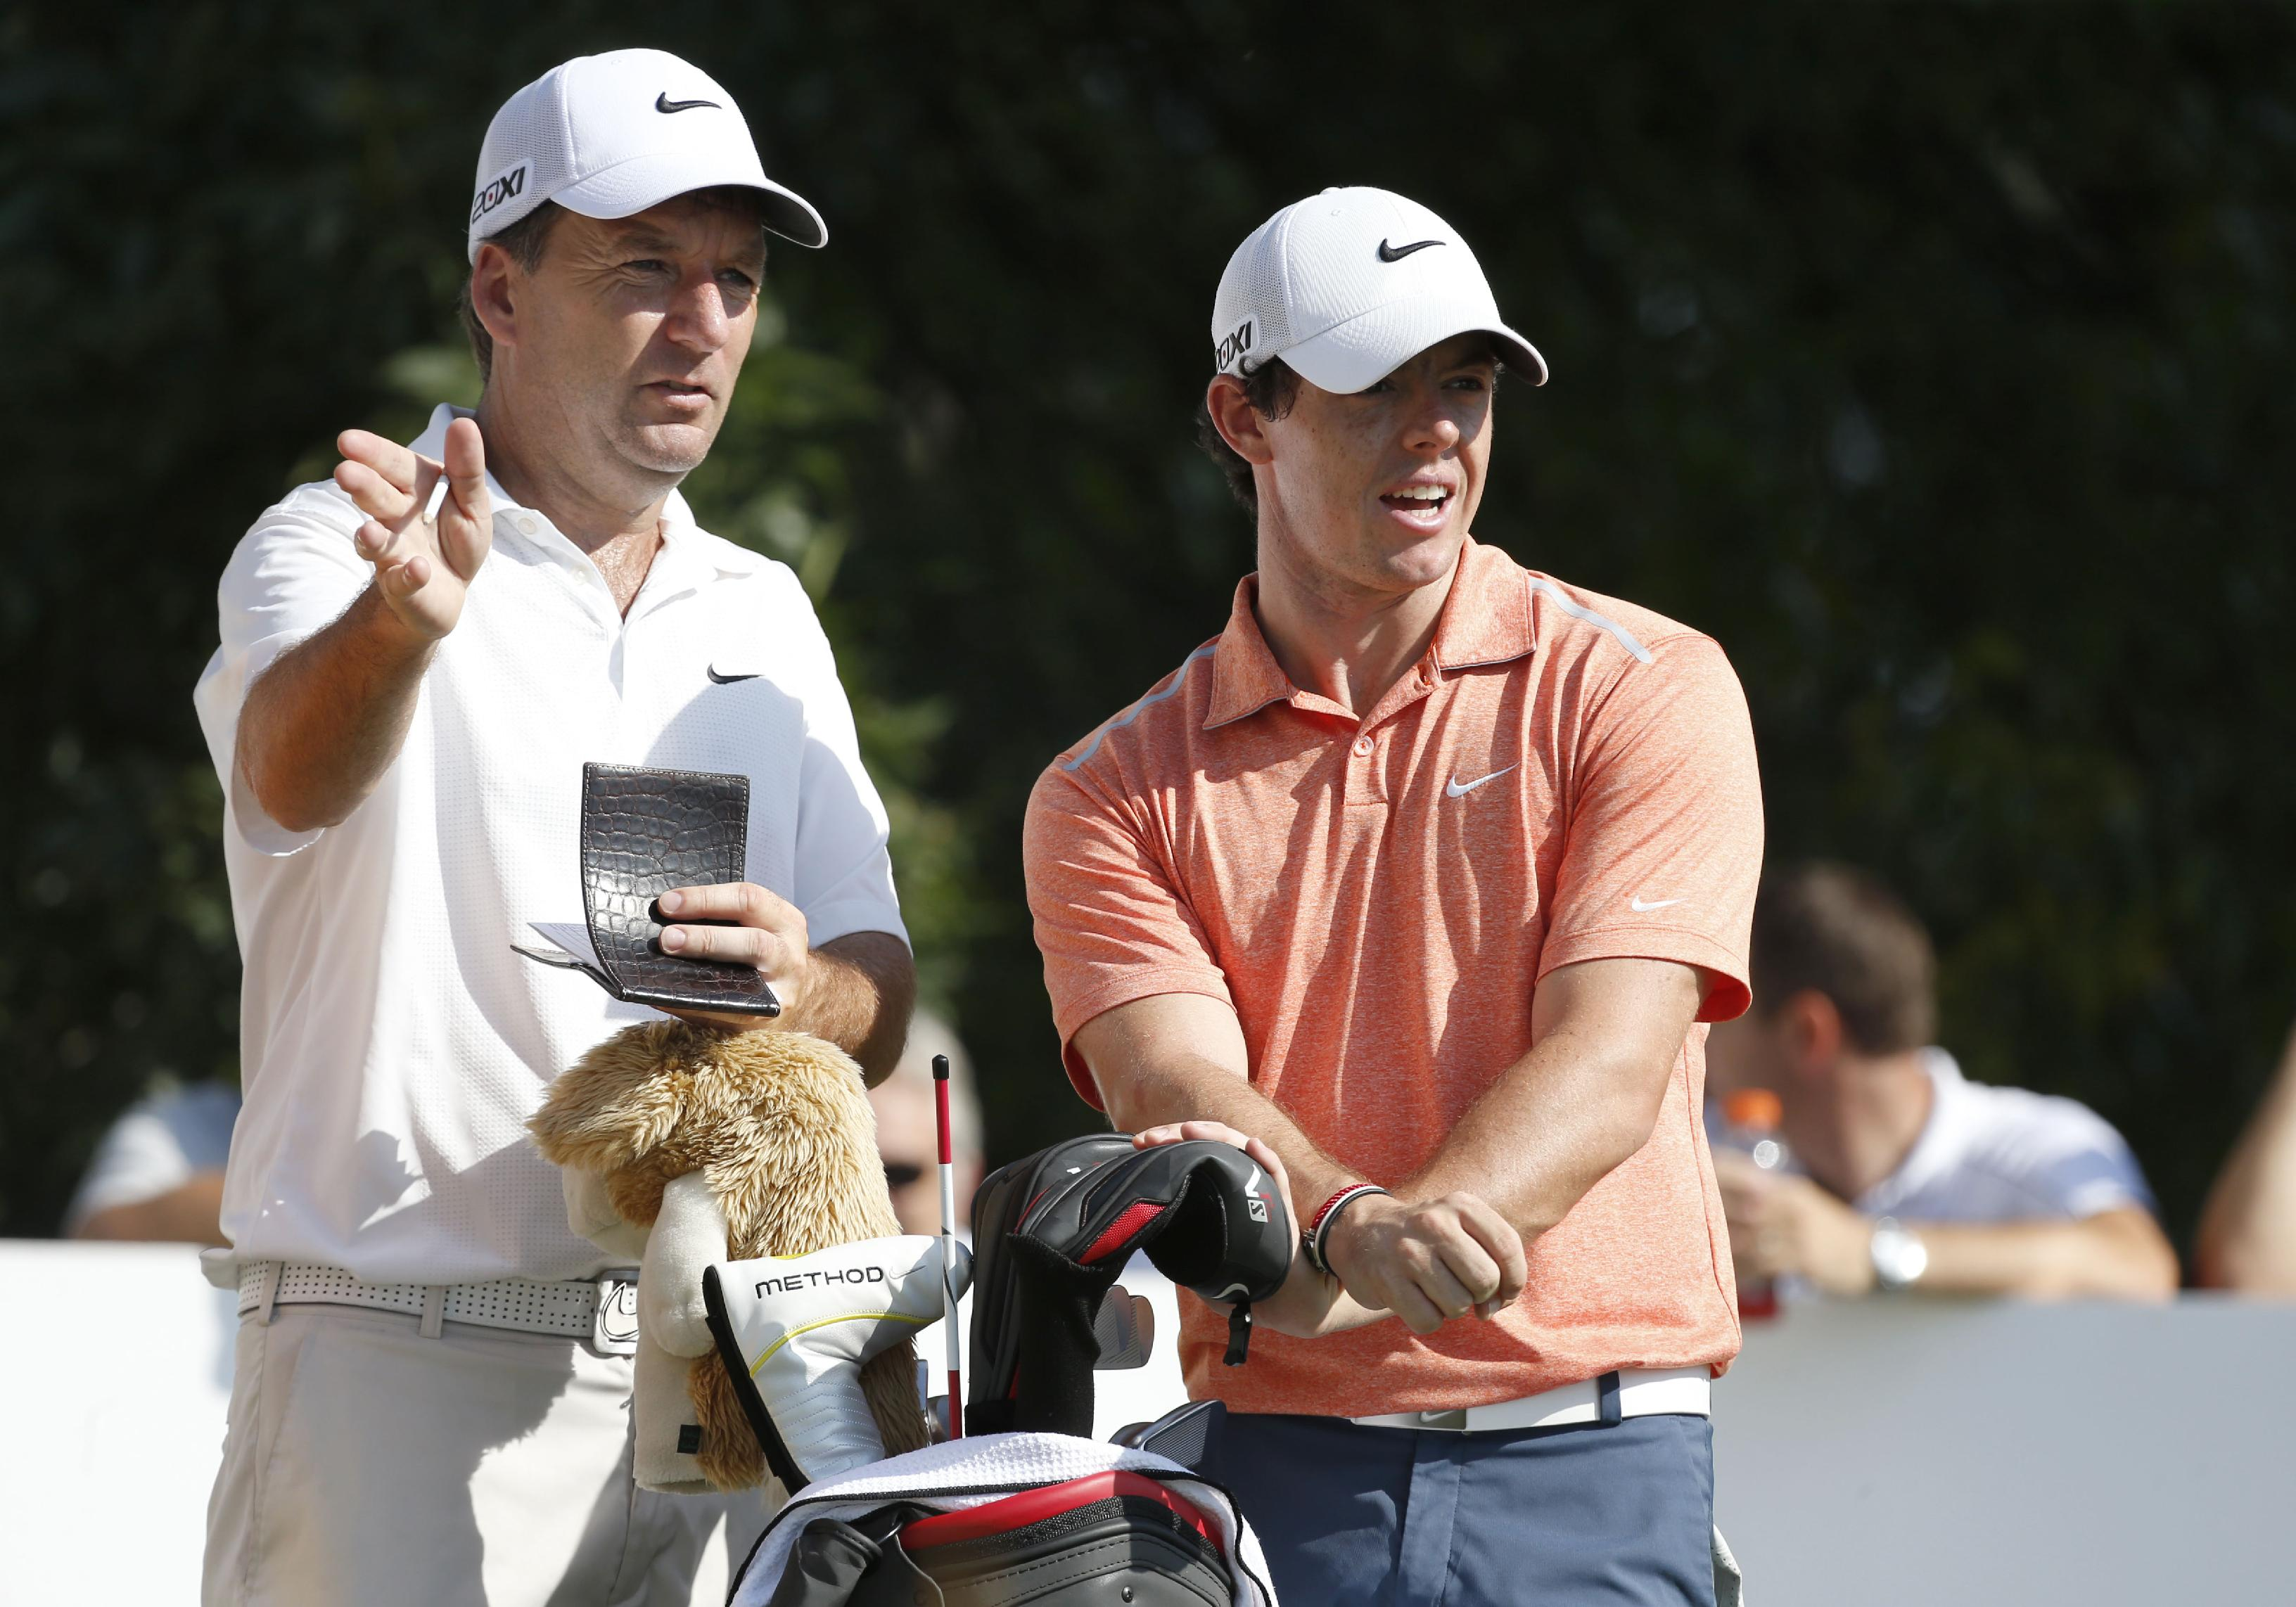 Golfer Rory McIlroy, right, of Northern Ireland, listens to caddie JP Fitzgerald at the 10th tee during the pro-am round of the 2013 BMW Championship golf tournament at Conway Farms Golf Club in Lake Forest. Ill., Wednesday, Sept. 11, 2013